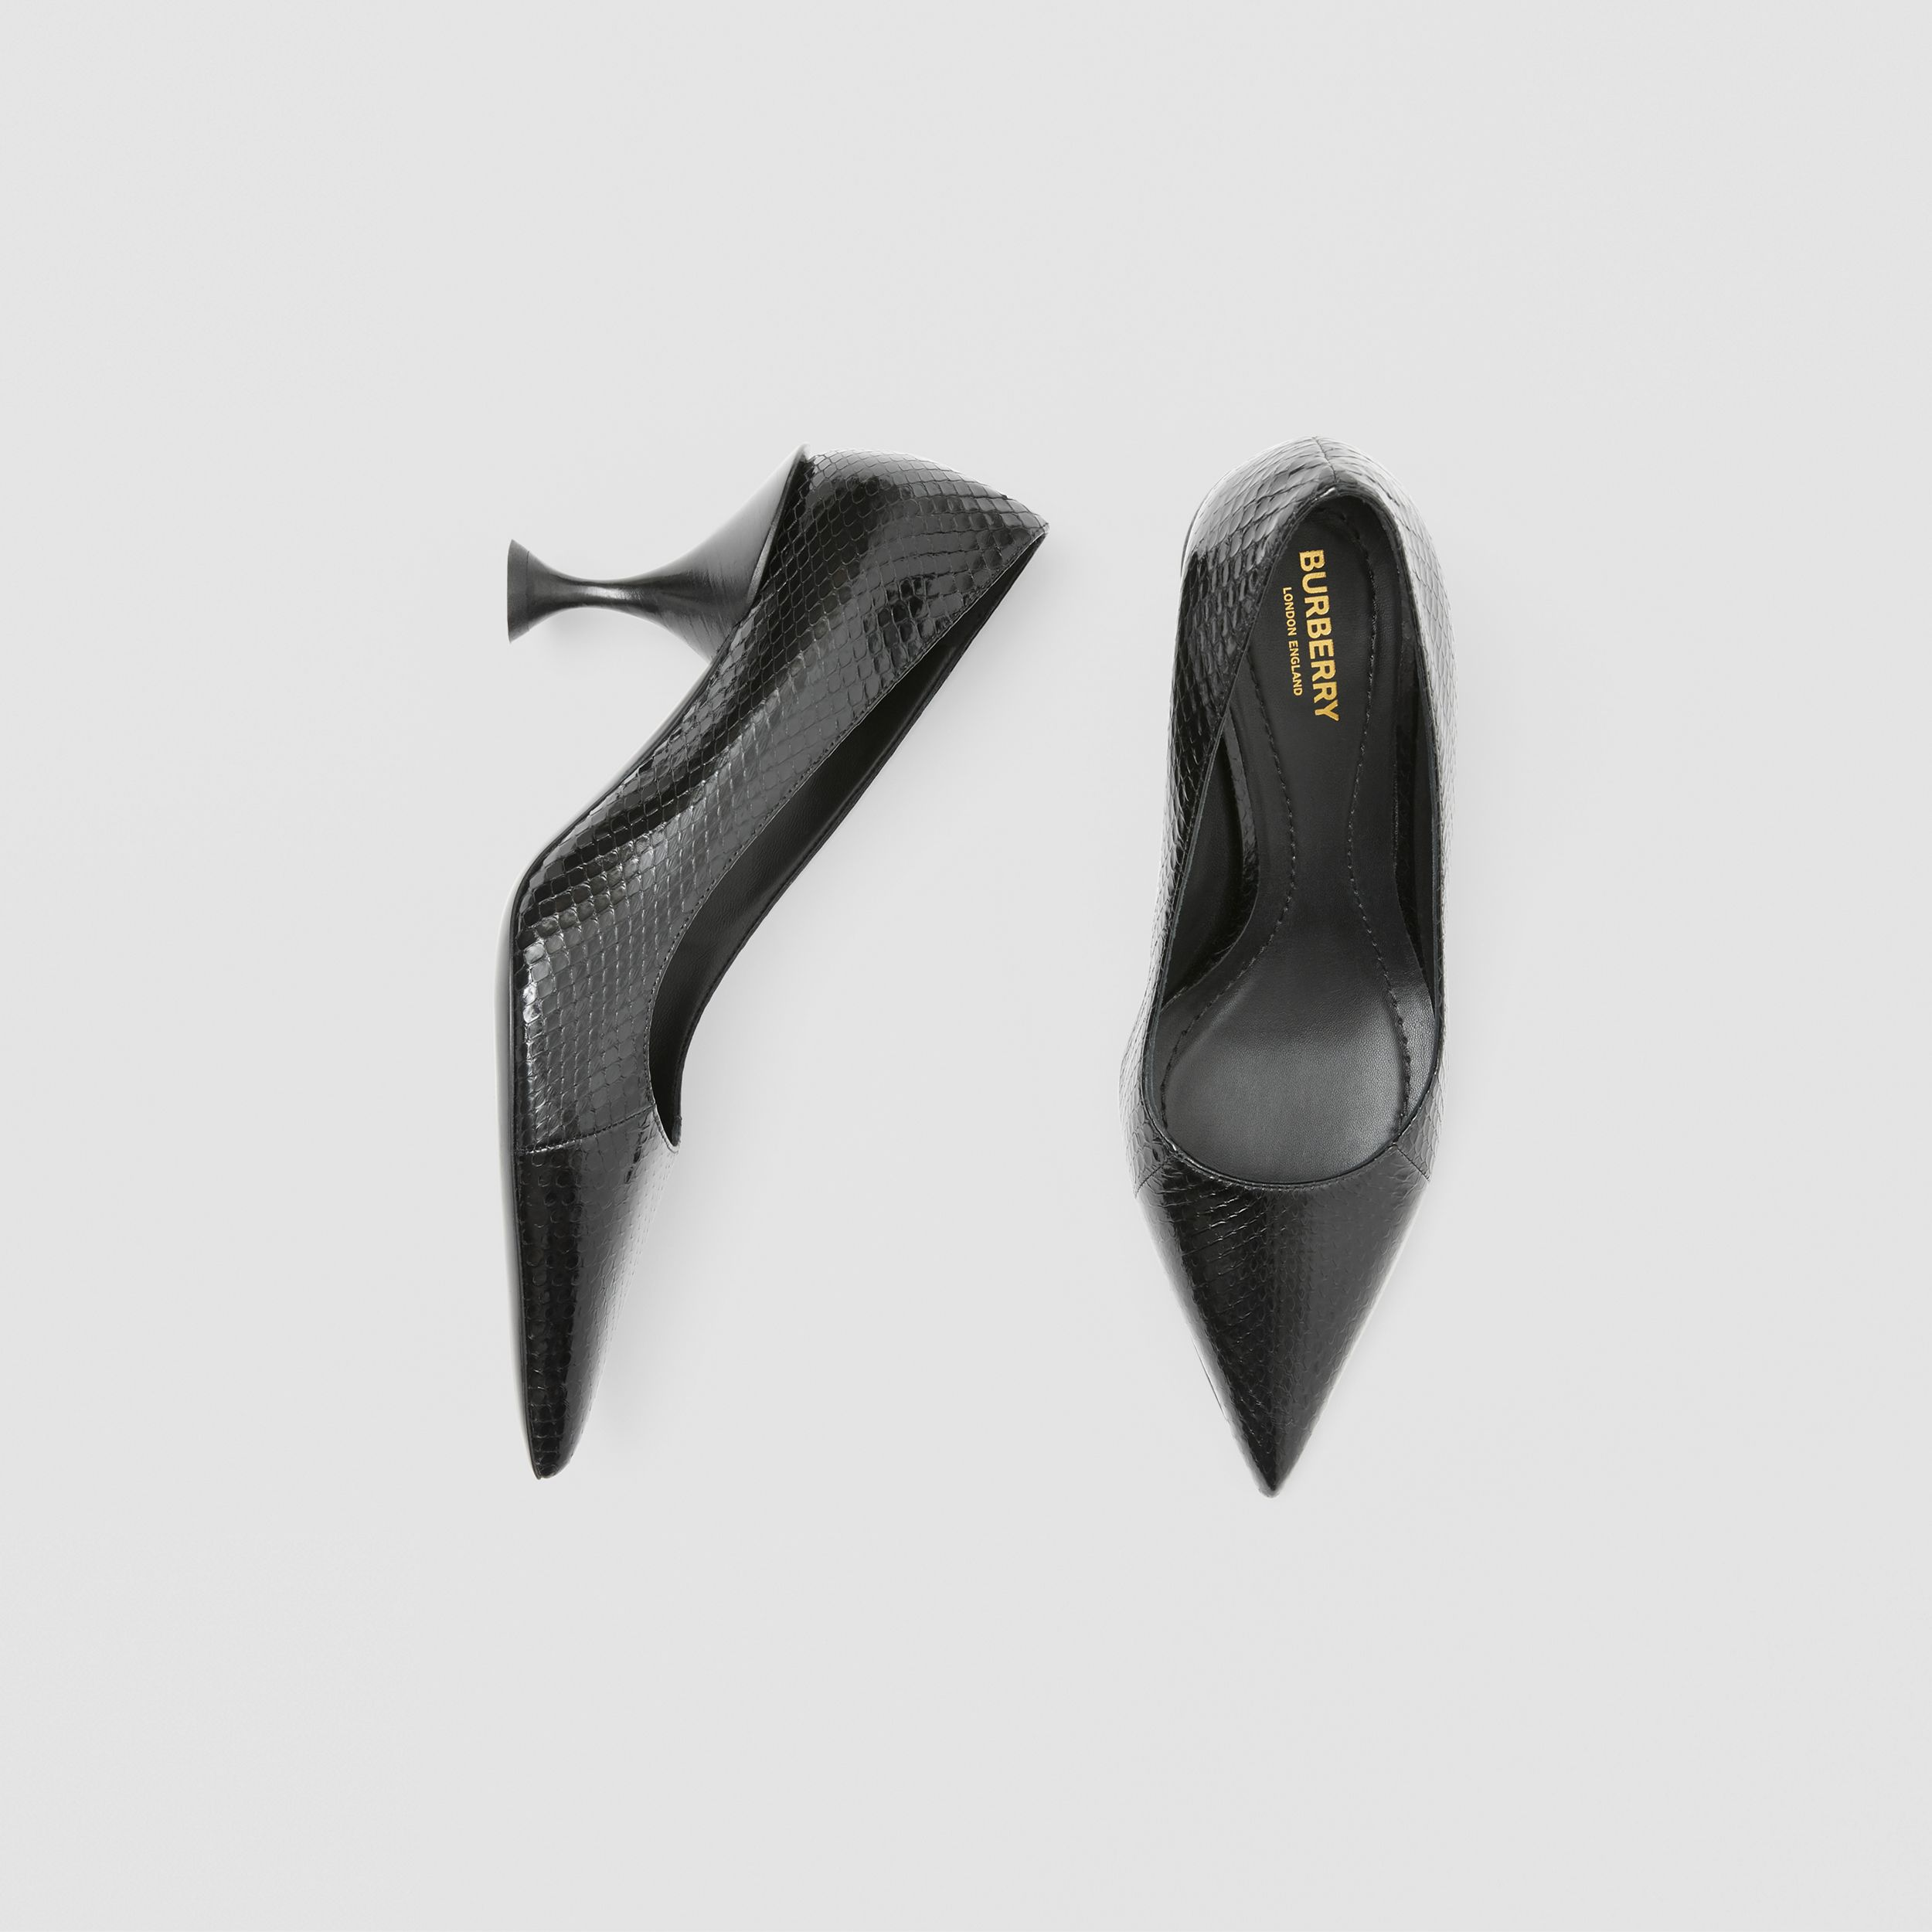 Snakeskin Point-toe Pumps in Black - Women | Burberry - 1